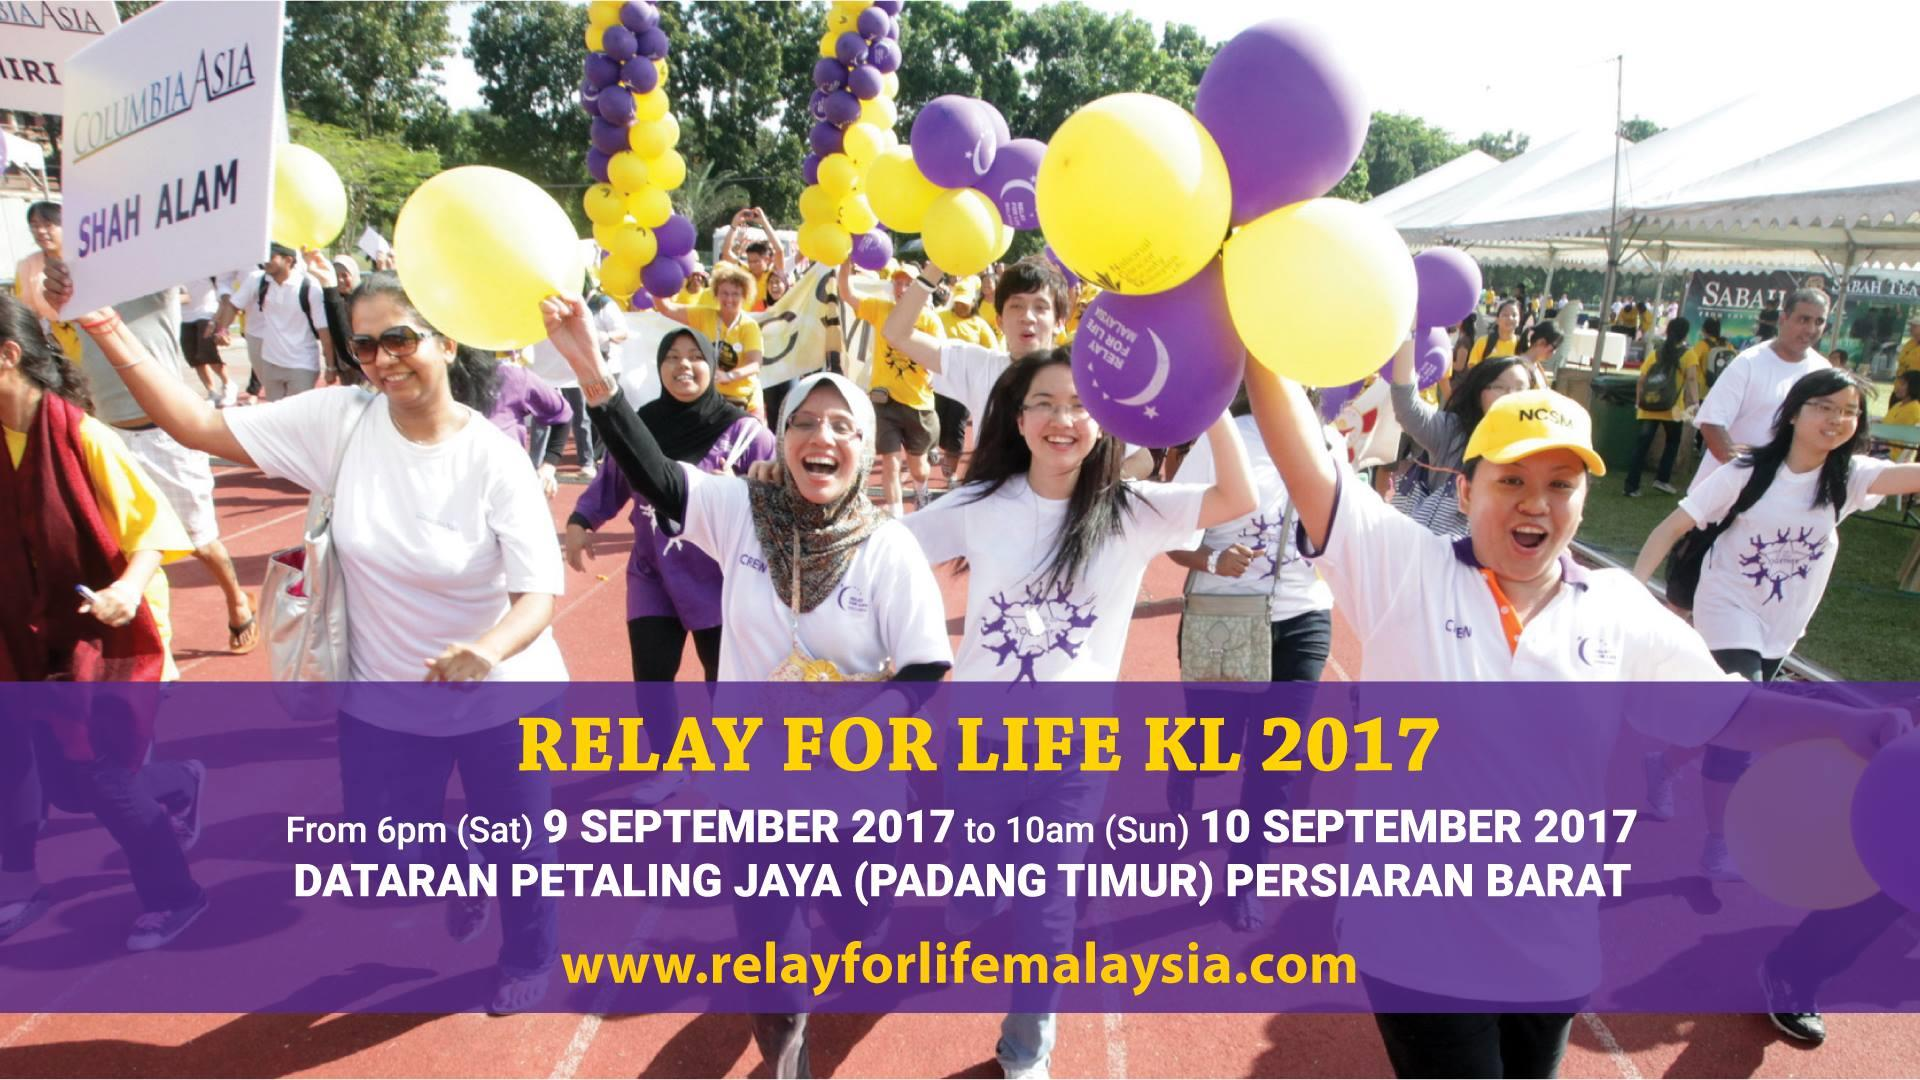 Relay For Life KL 2017